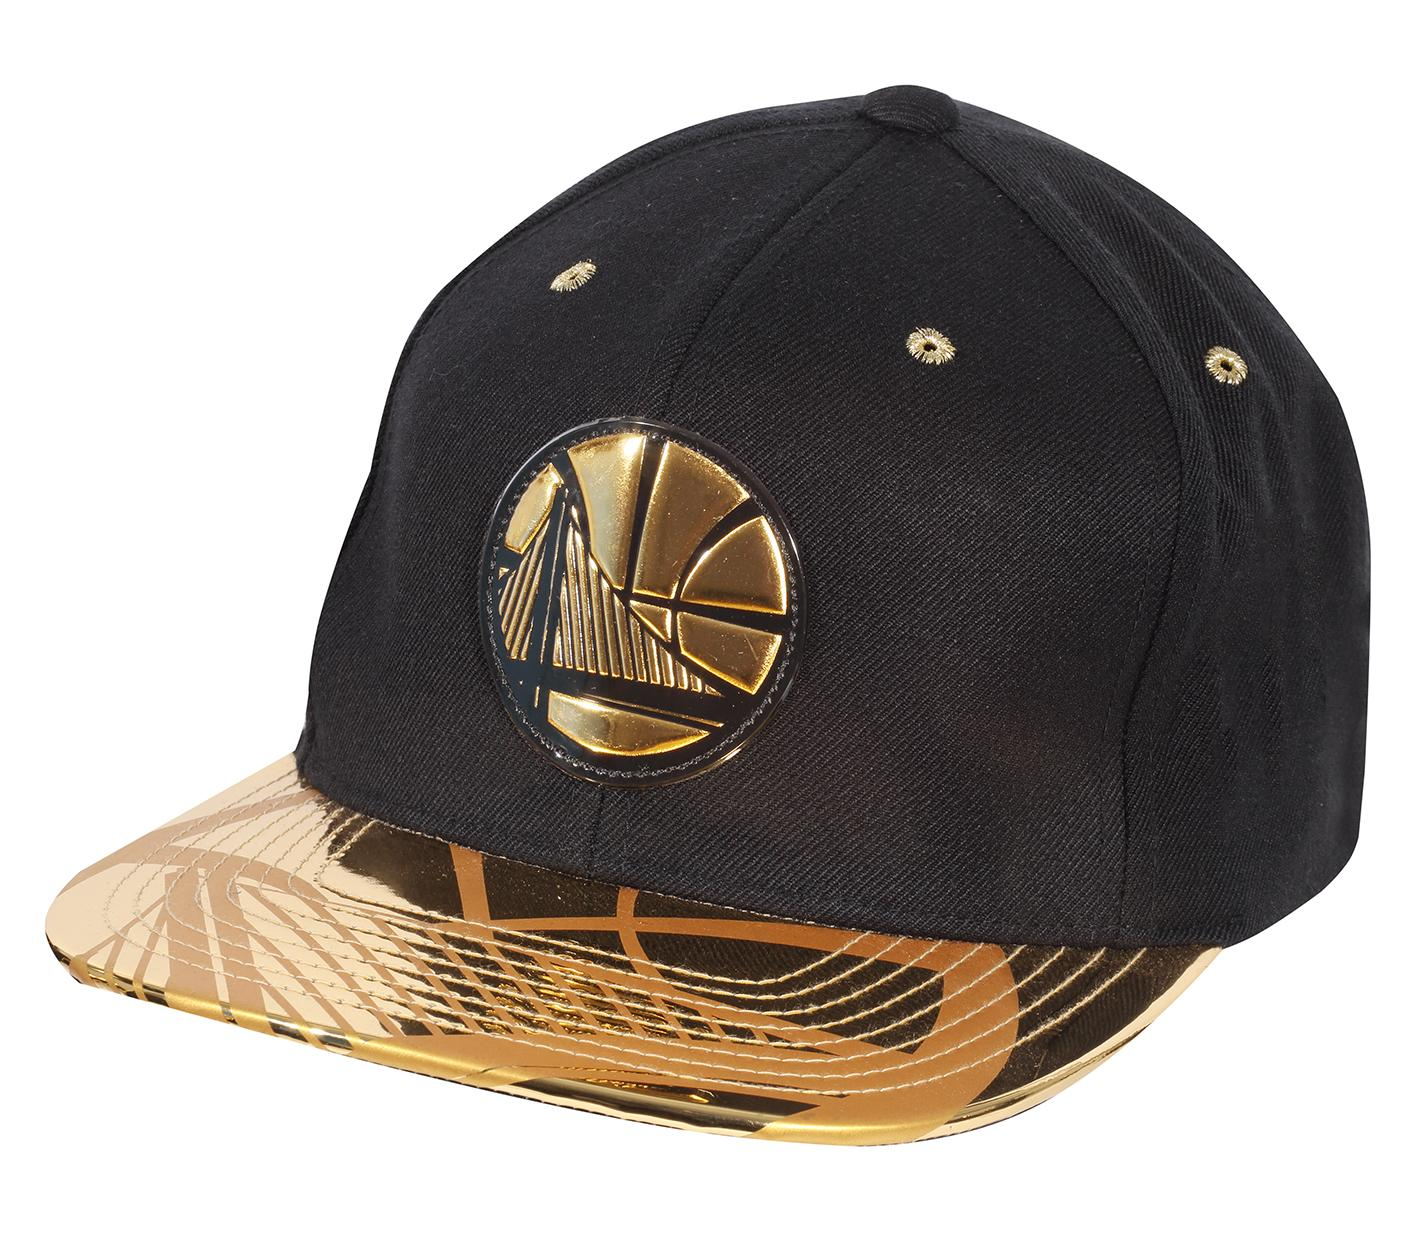 Gold Standard Snapback Golden State Warriors 073c3050ebe8